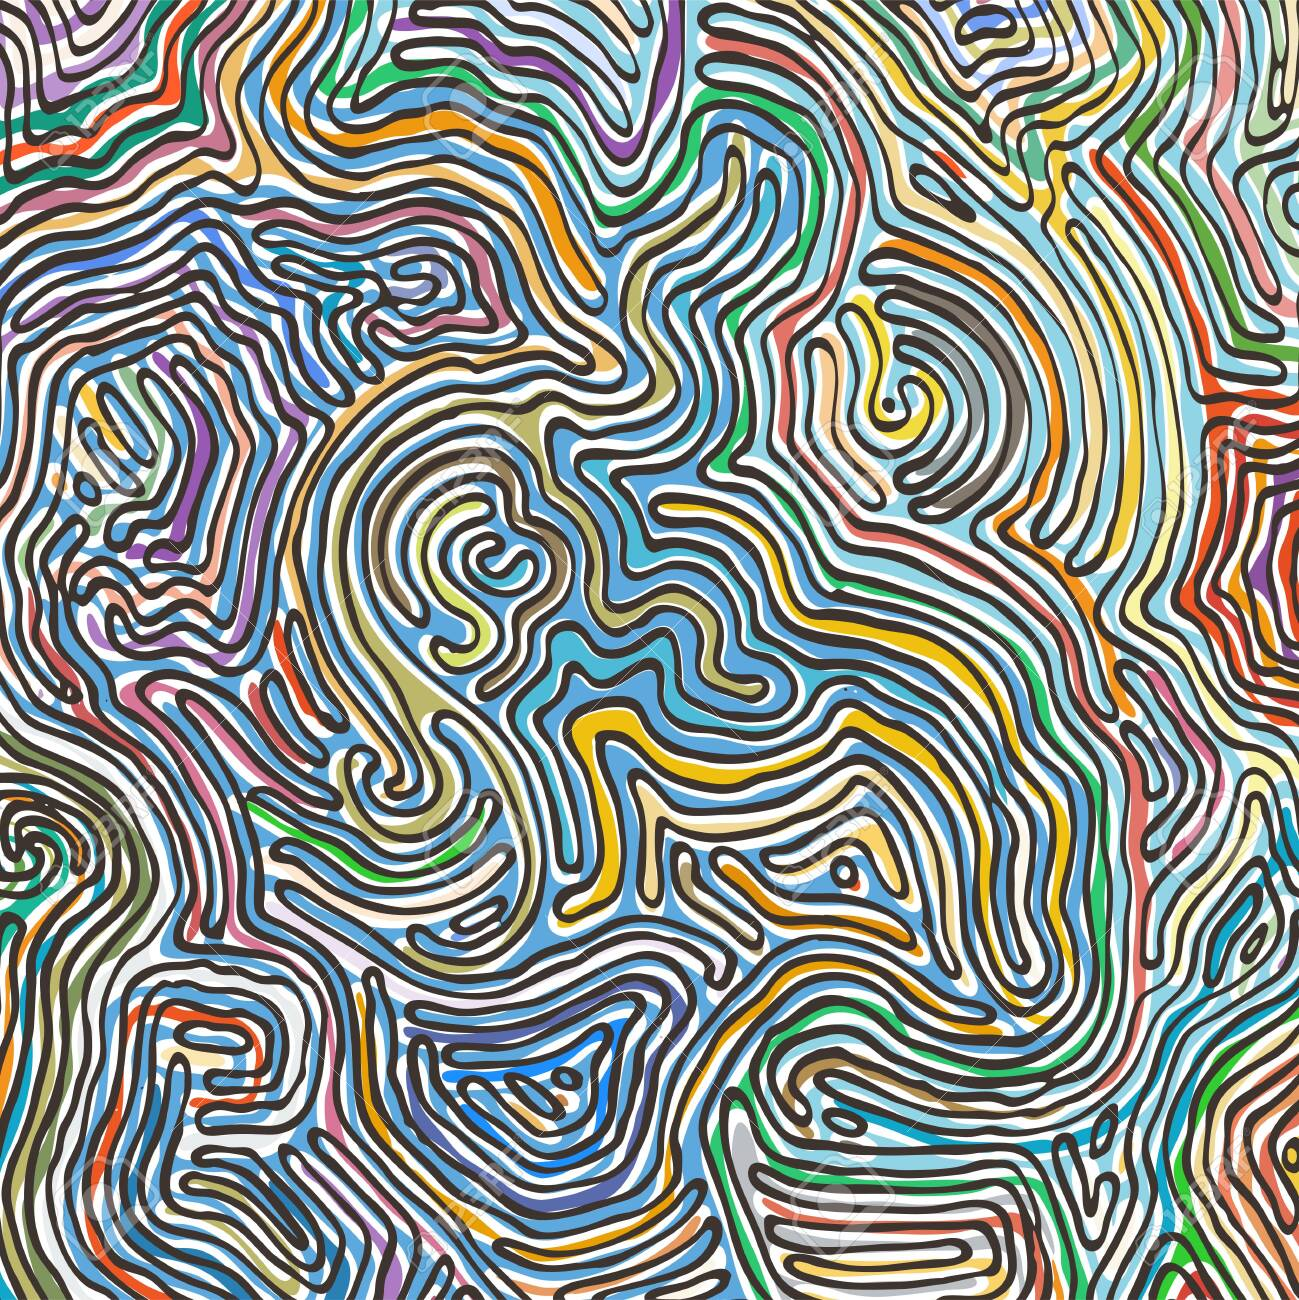 Vector color pattern, curved lines, colorful grunge background. Abstract dynamical rippled surface, illusion of movement, curvature, stone texture - 122533067